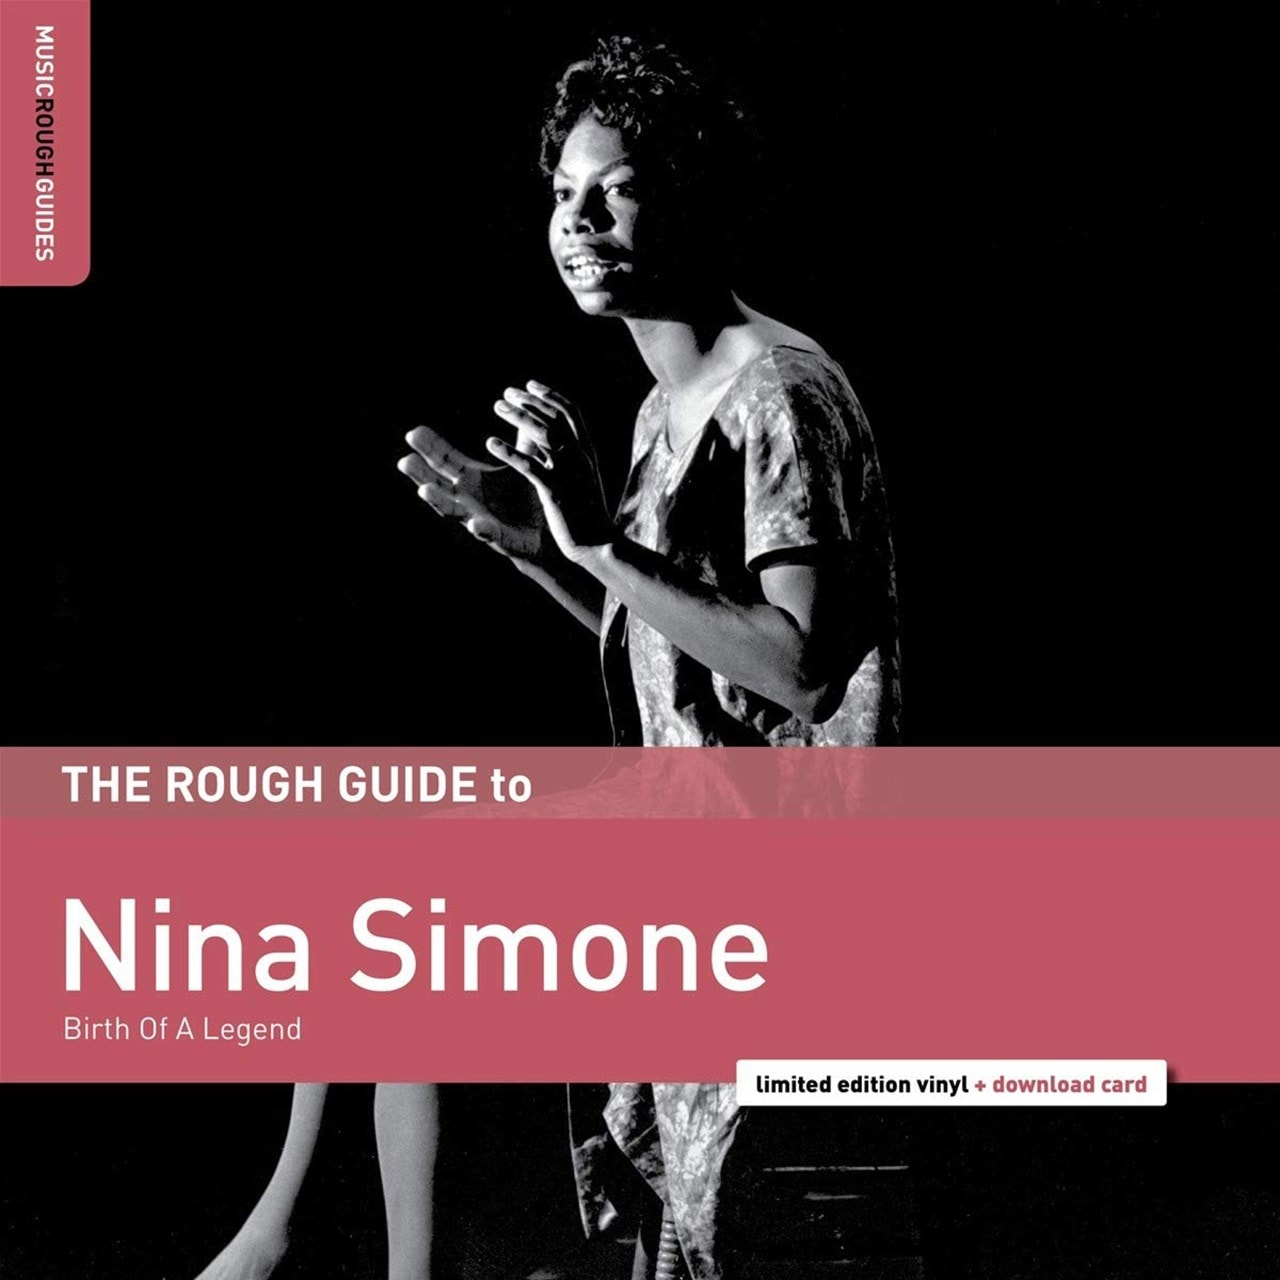 The Rough Guide to Nina Simone: Birth of a Legend - 1